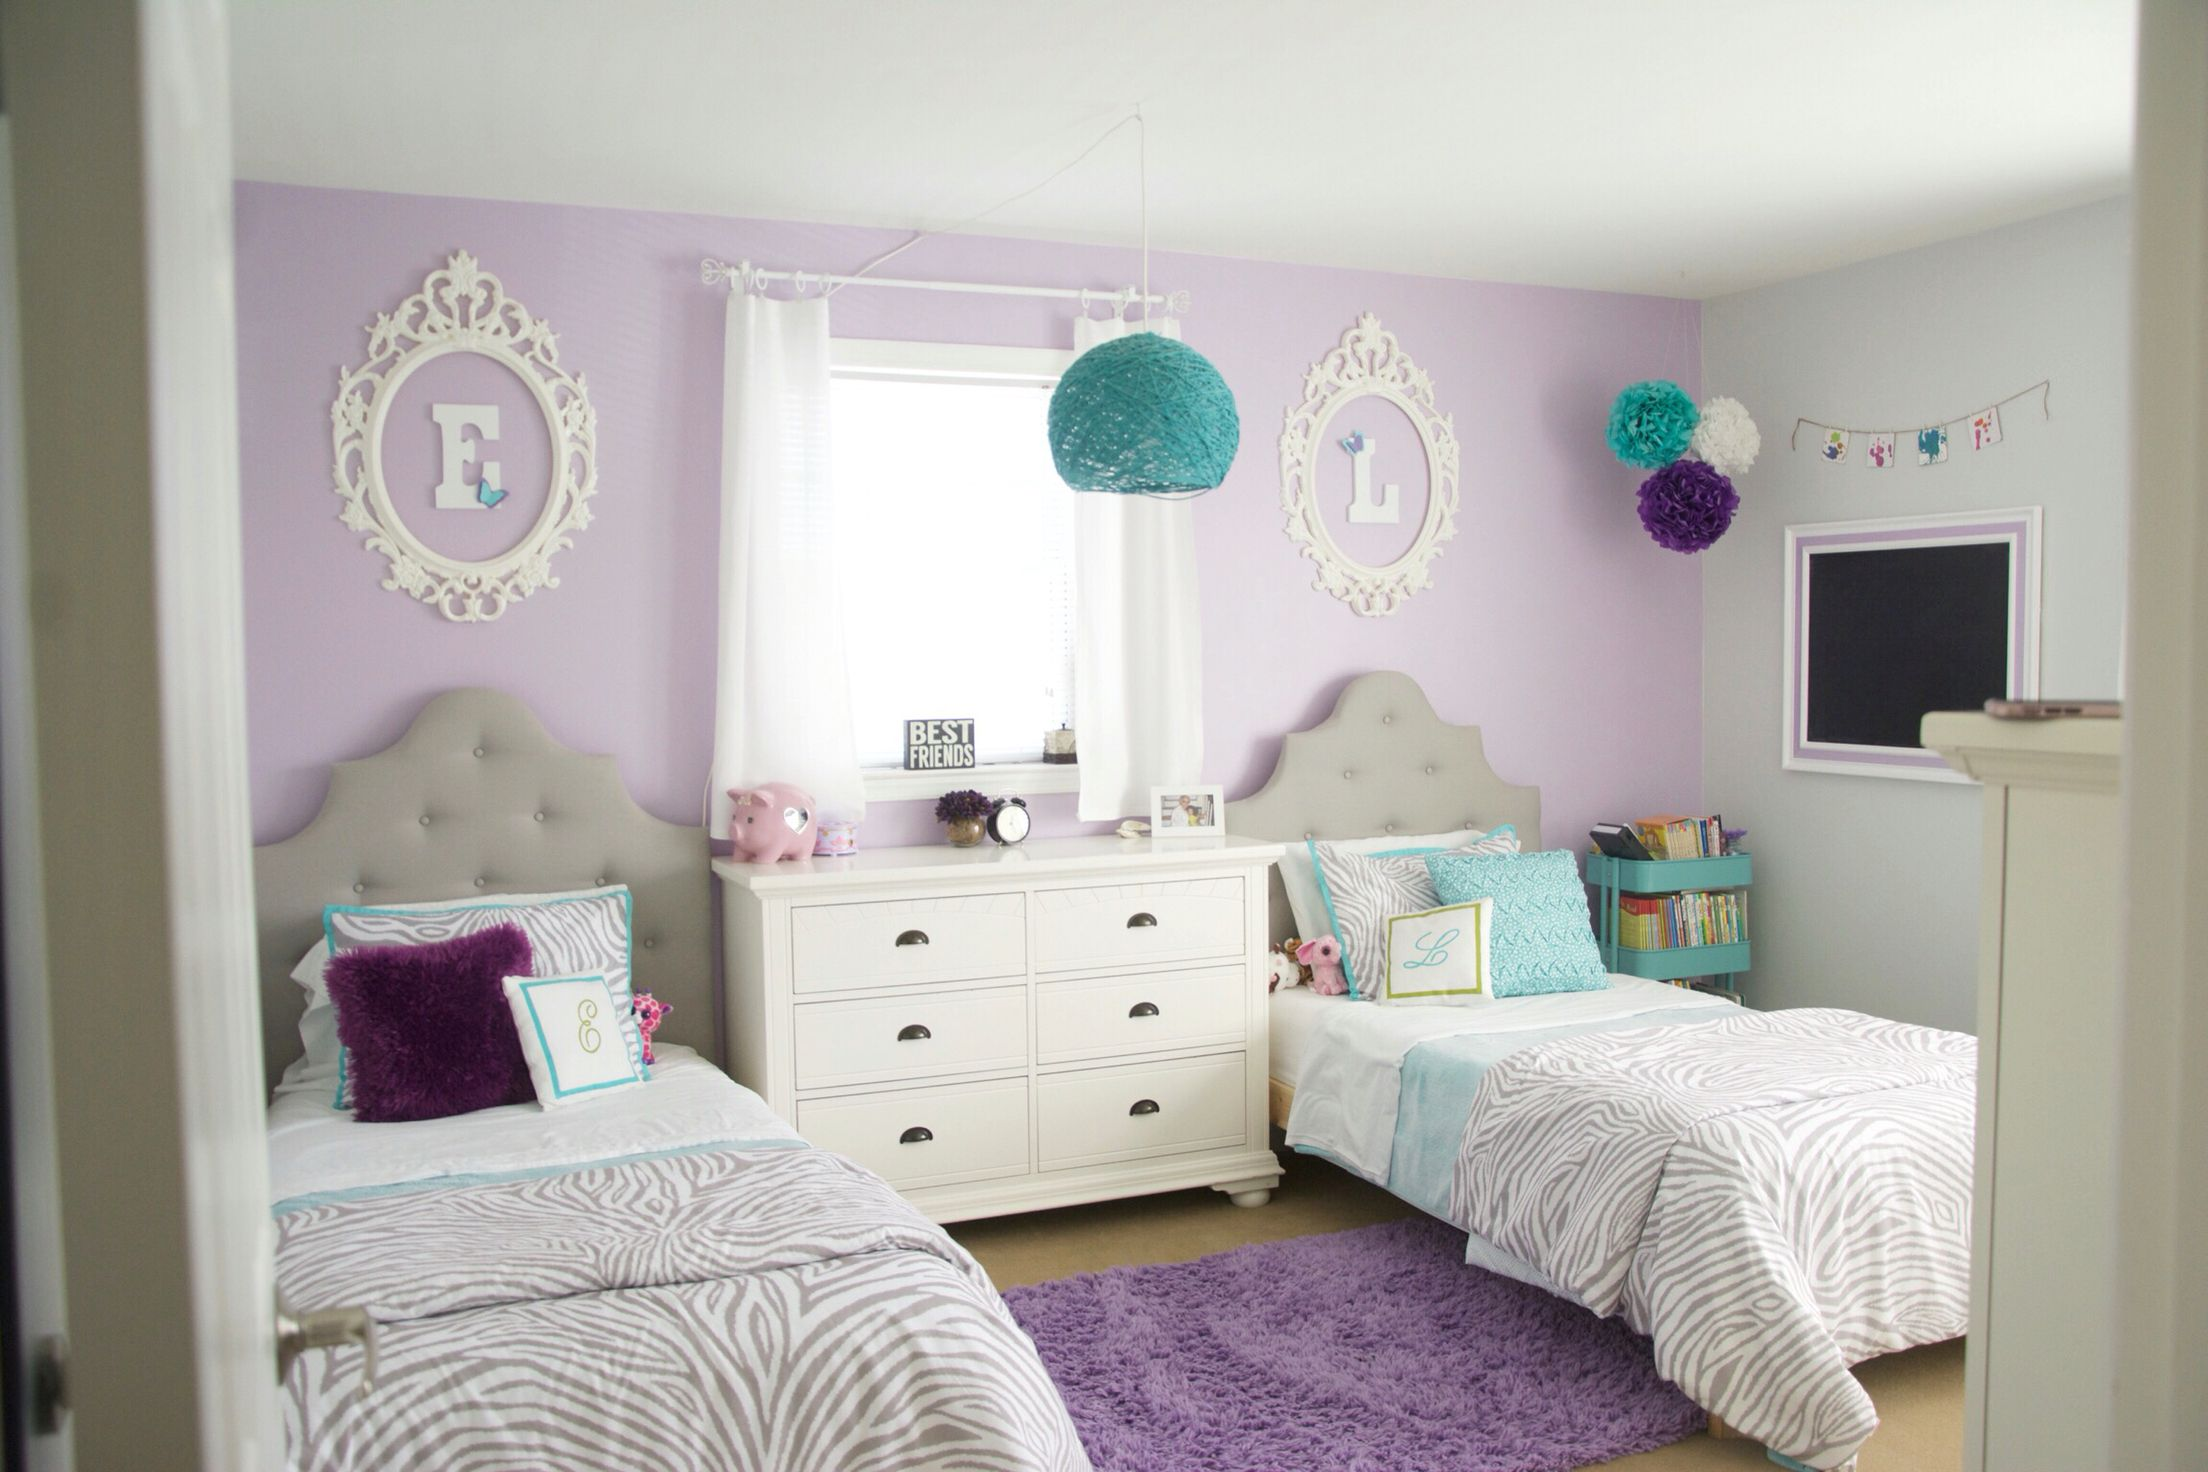 Girls shared bedroom teal and purple ung frames kids room